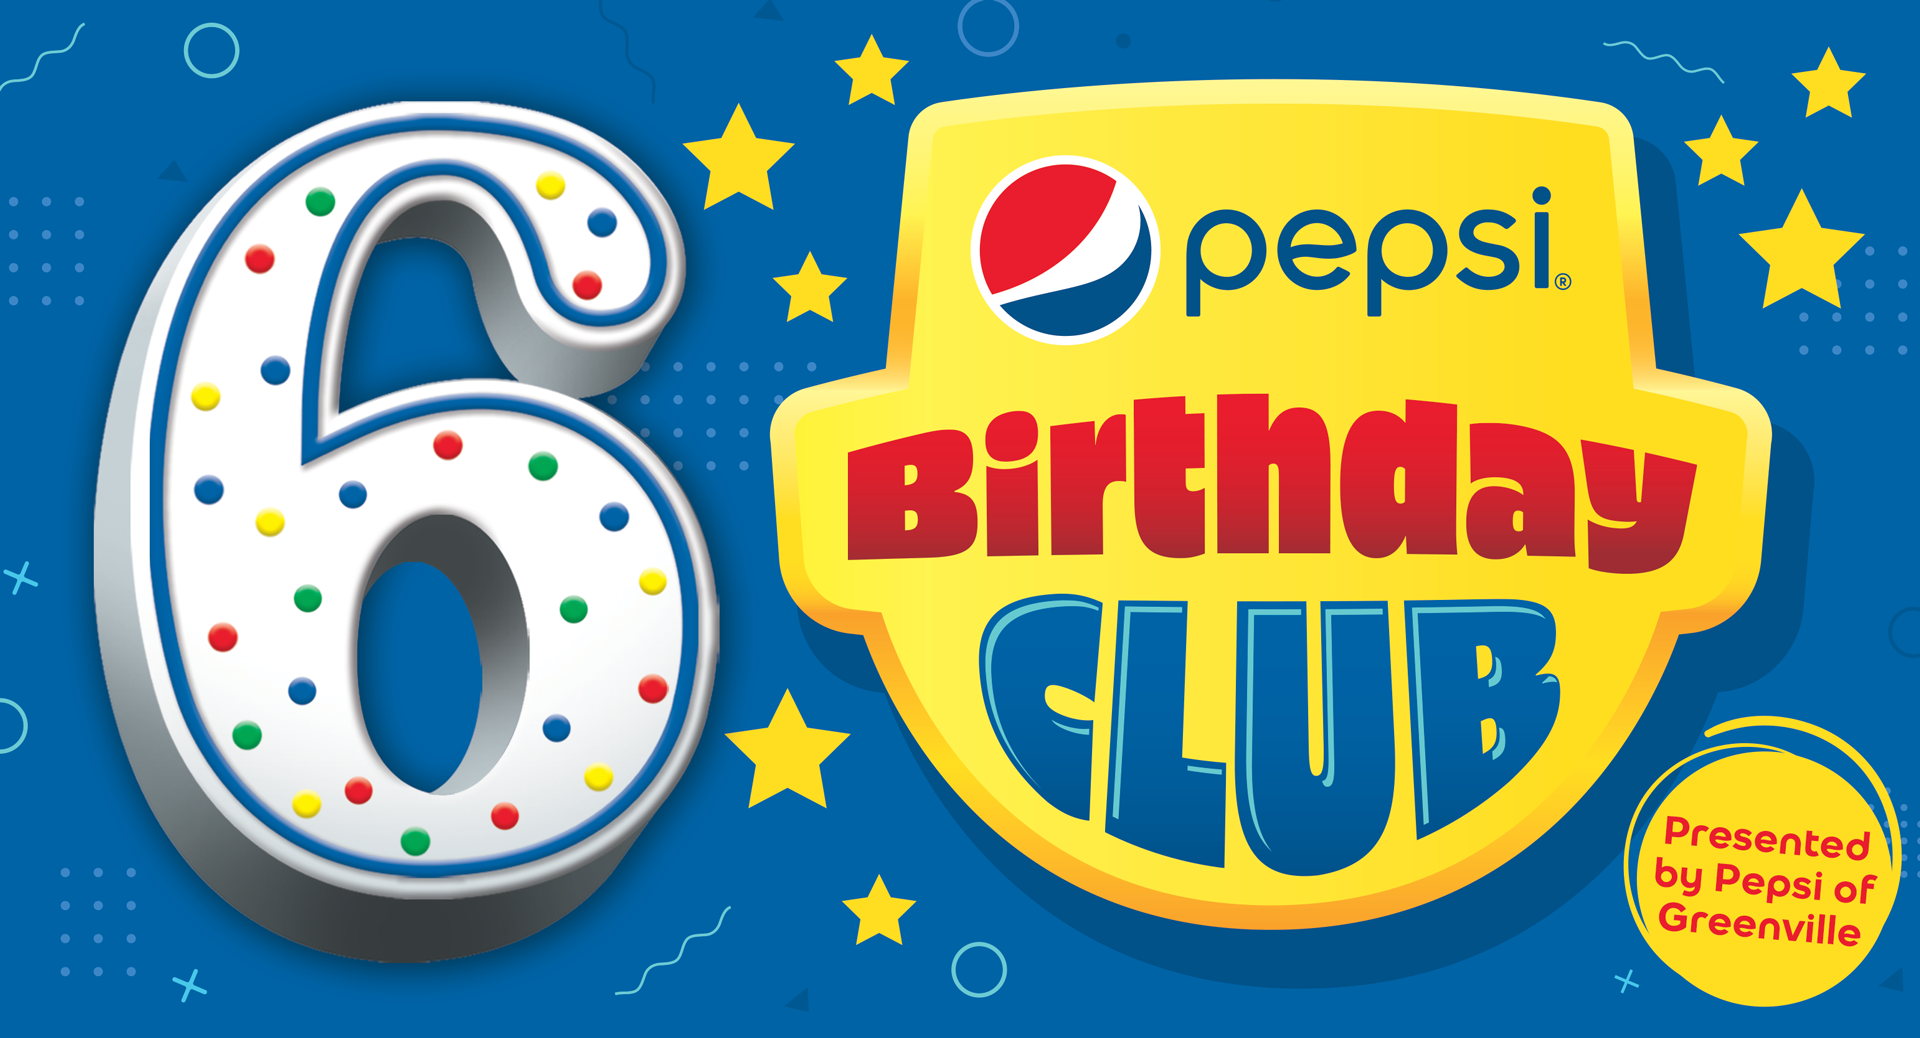 Over 50 Years Ago Tom Hartness Who Founded Pepsi Cola Of Greenville In 1940 Started A Program To Recognize Boys And Girls On Their 6th Birthday